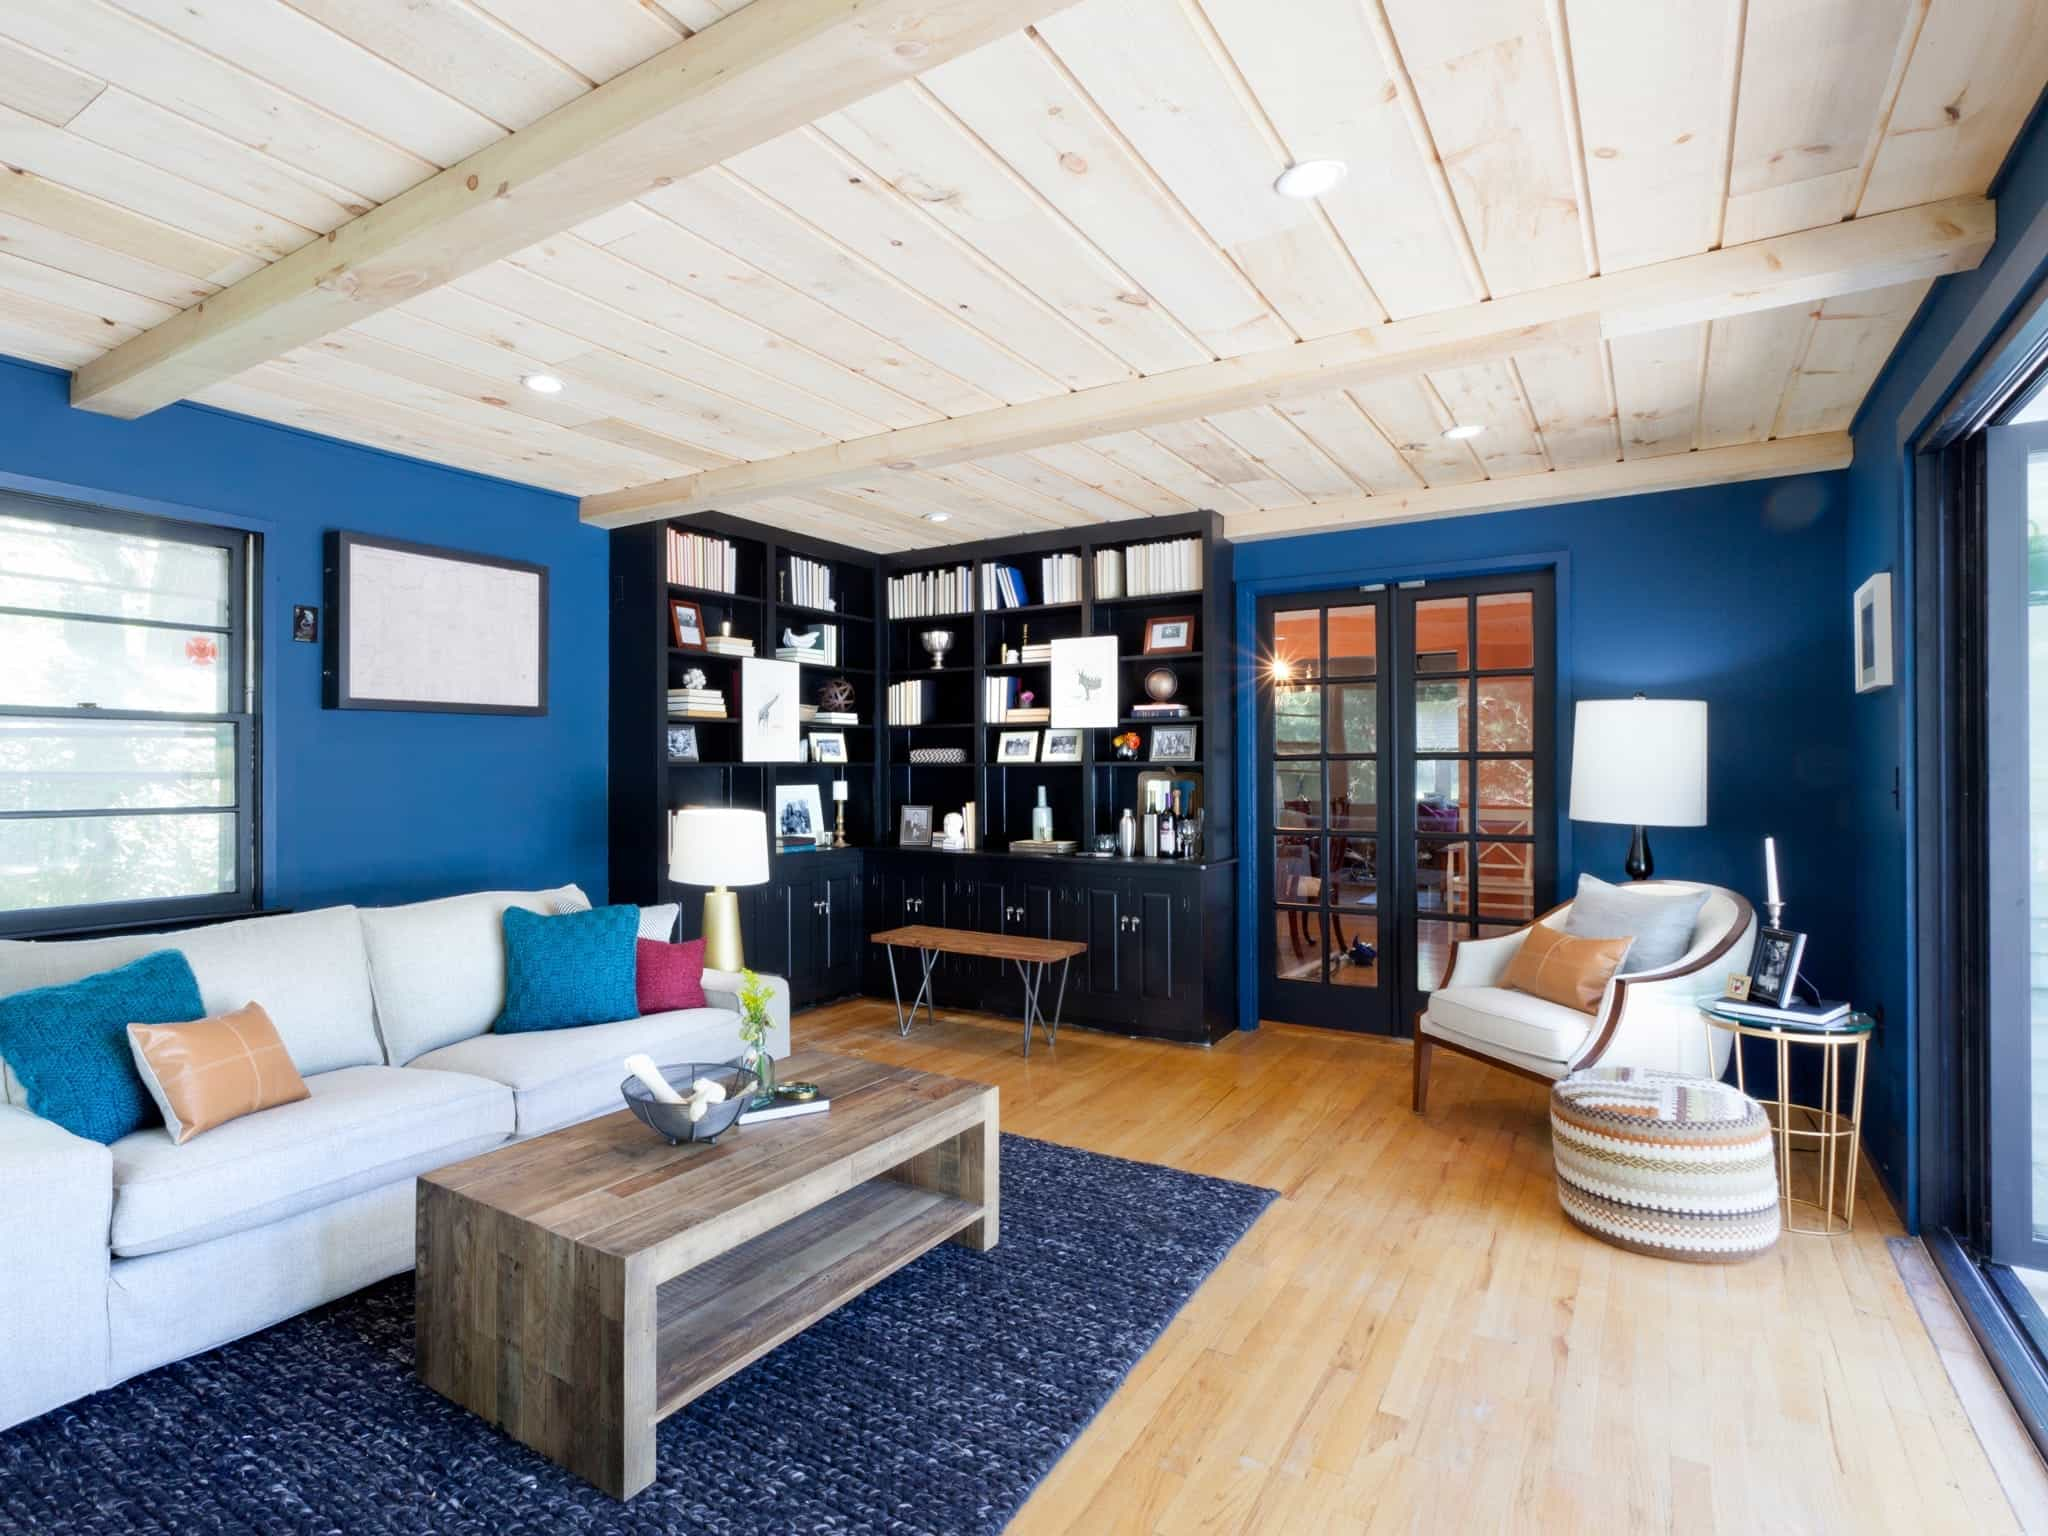 2017 Blue Contemporary Living Room With Black Corner Bookcases (Image 1 of 29)